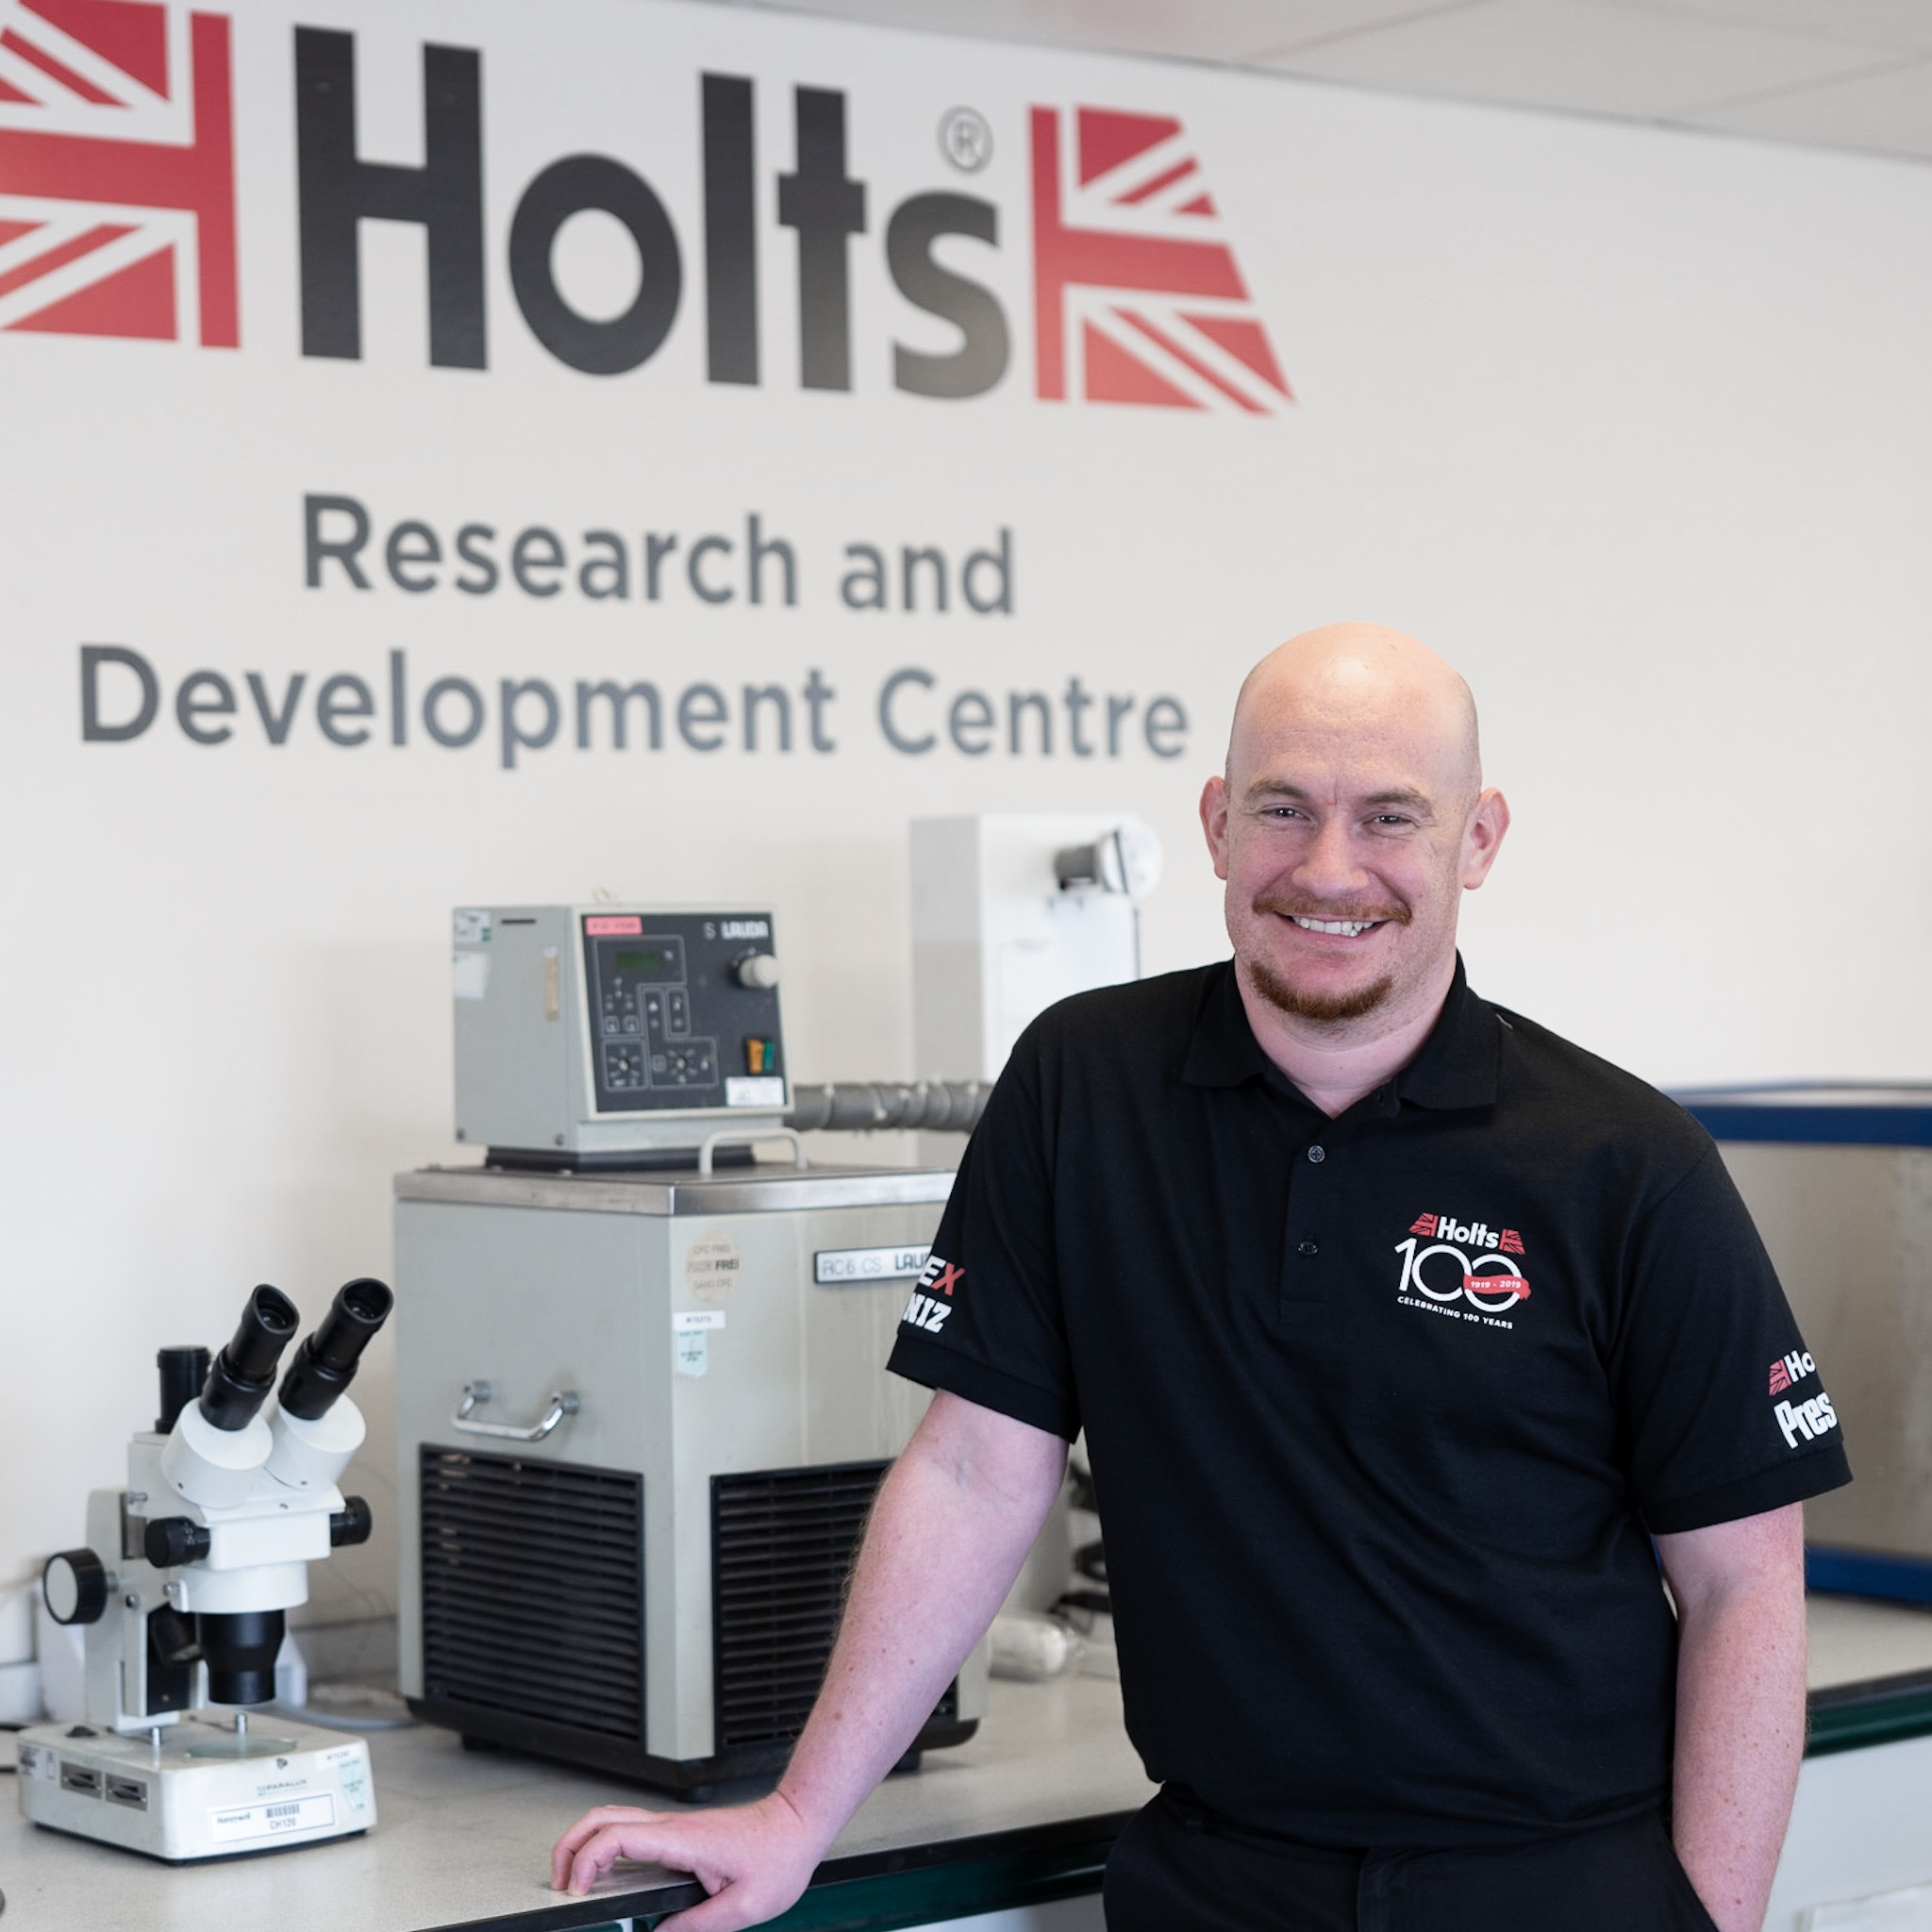 Phil who works in the lab at holts